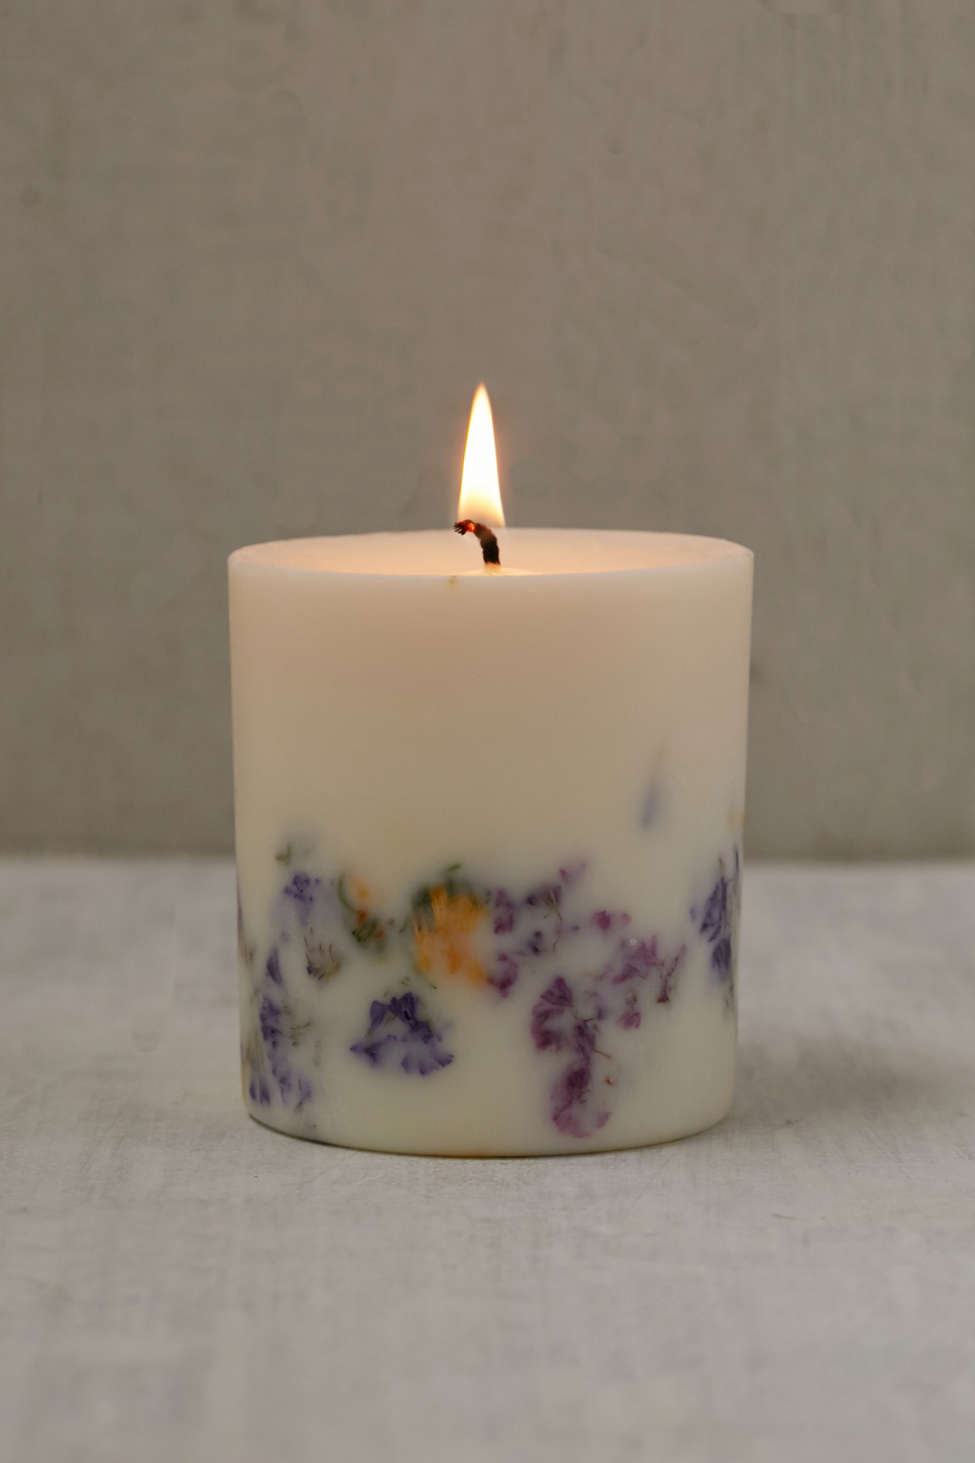 Slide View: 1: Munio Candela Wild Flowers Candle